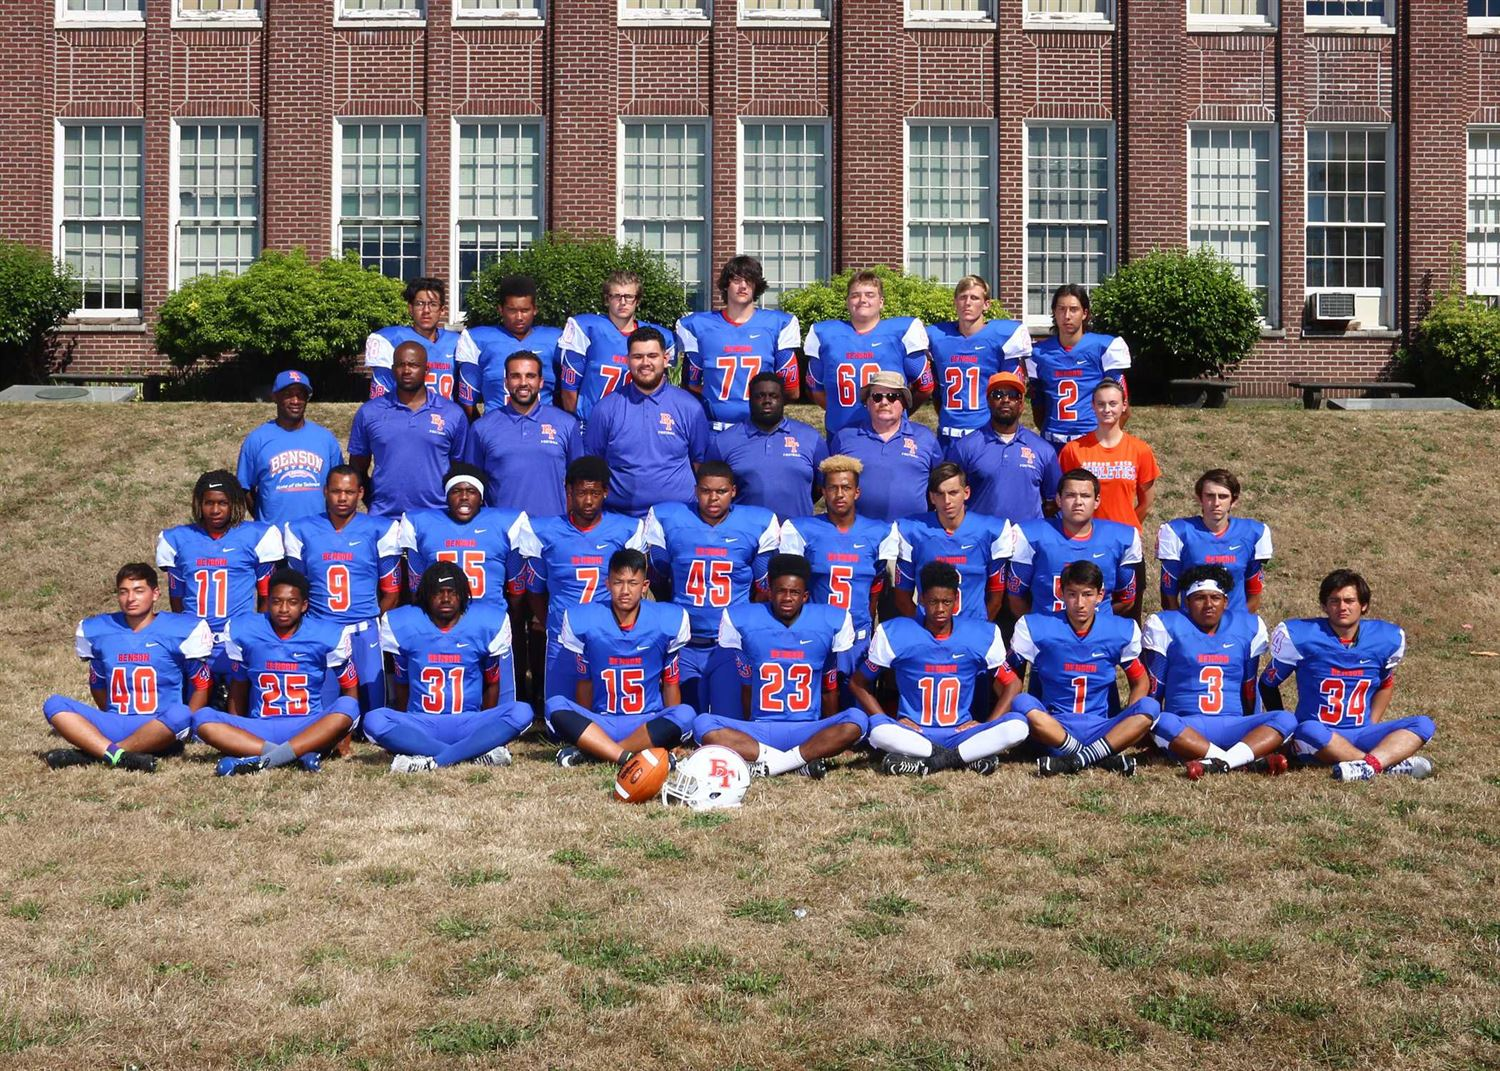 Benson Tech High School - Boys Varsity Football